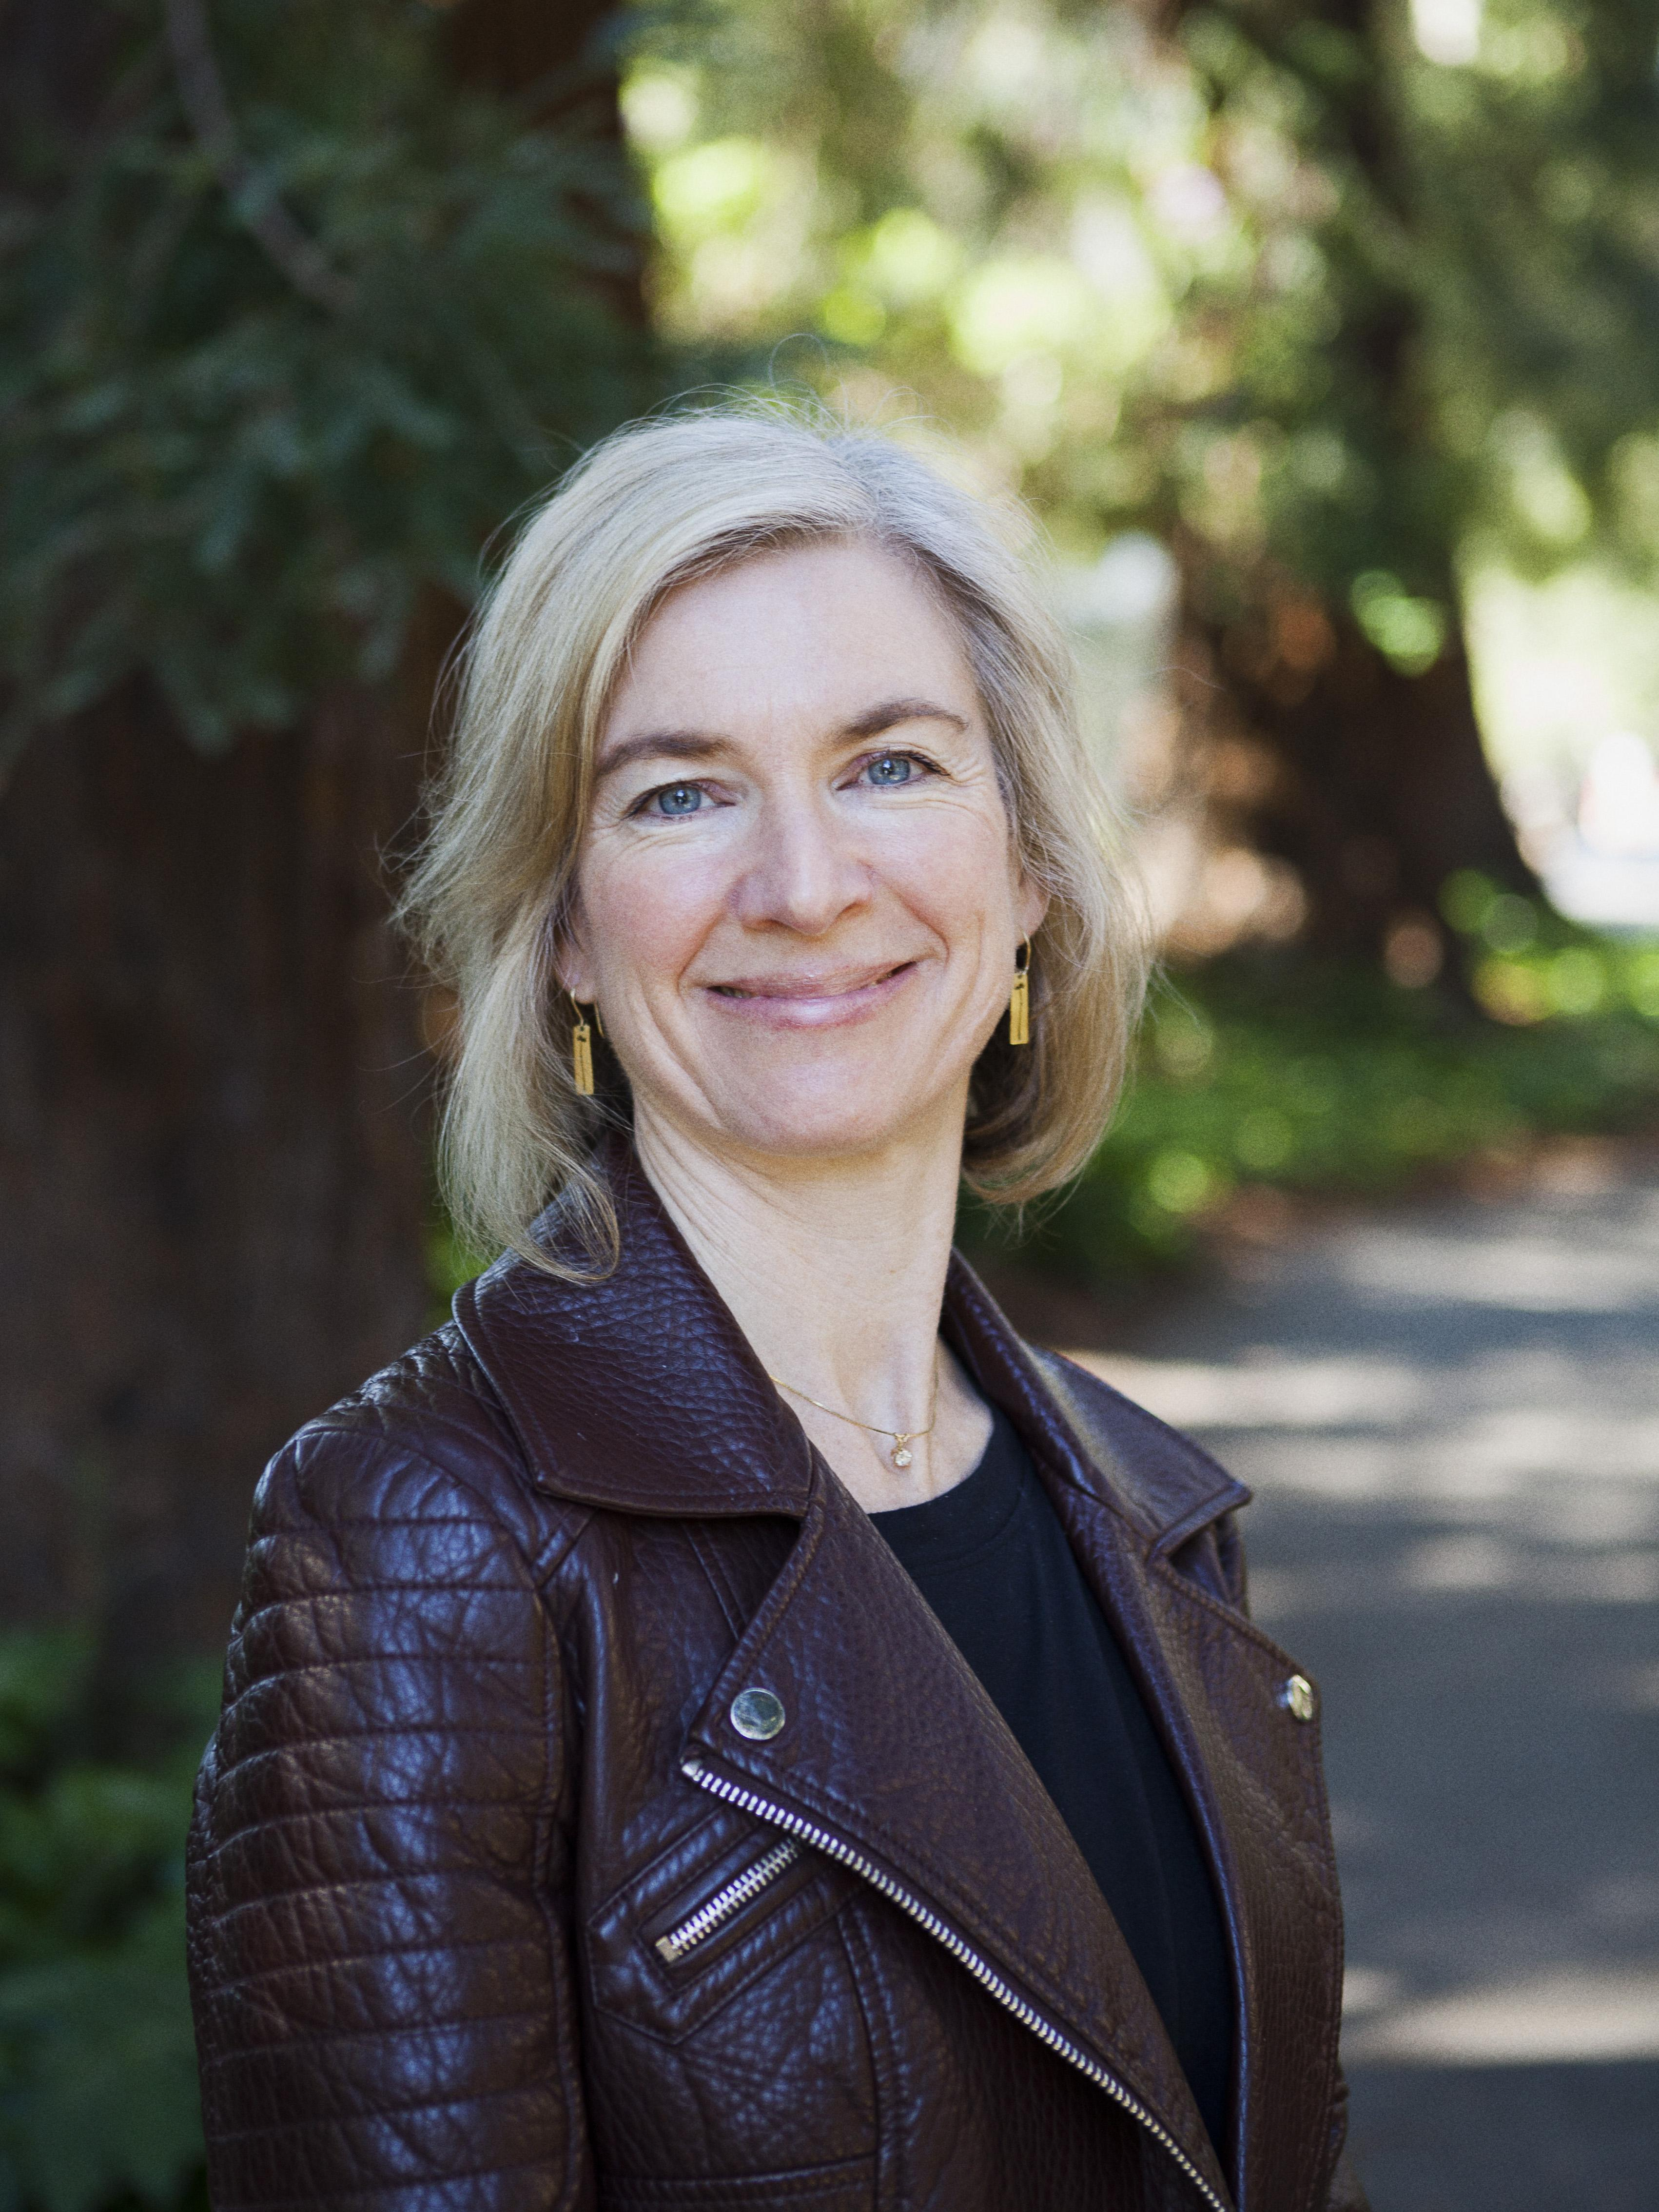 Portrait photo of Jennifer Doudna casually dressed and smiling in front of shaded trees.